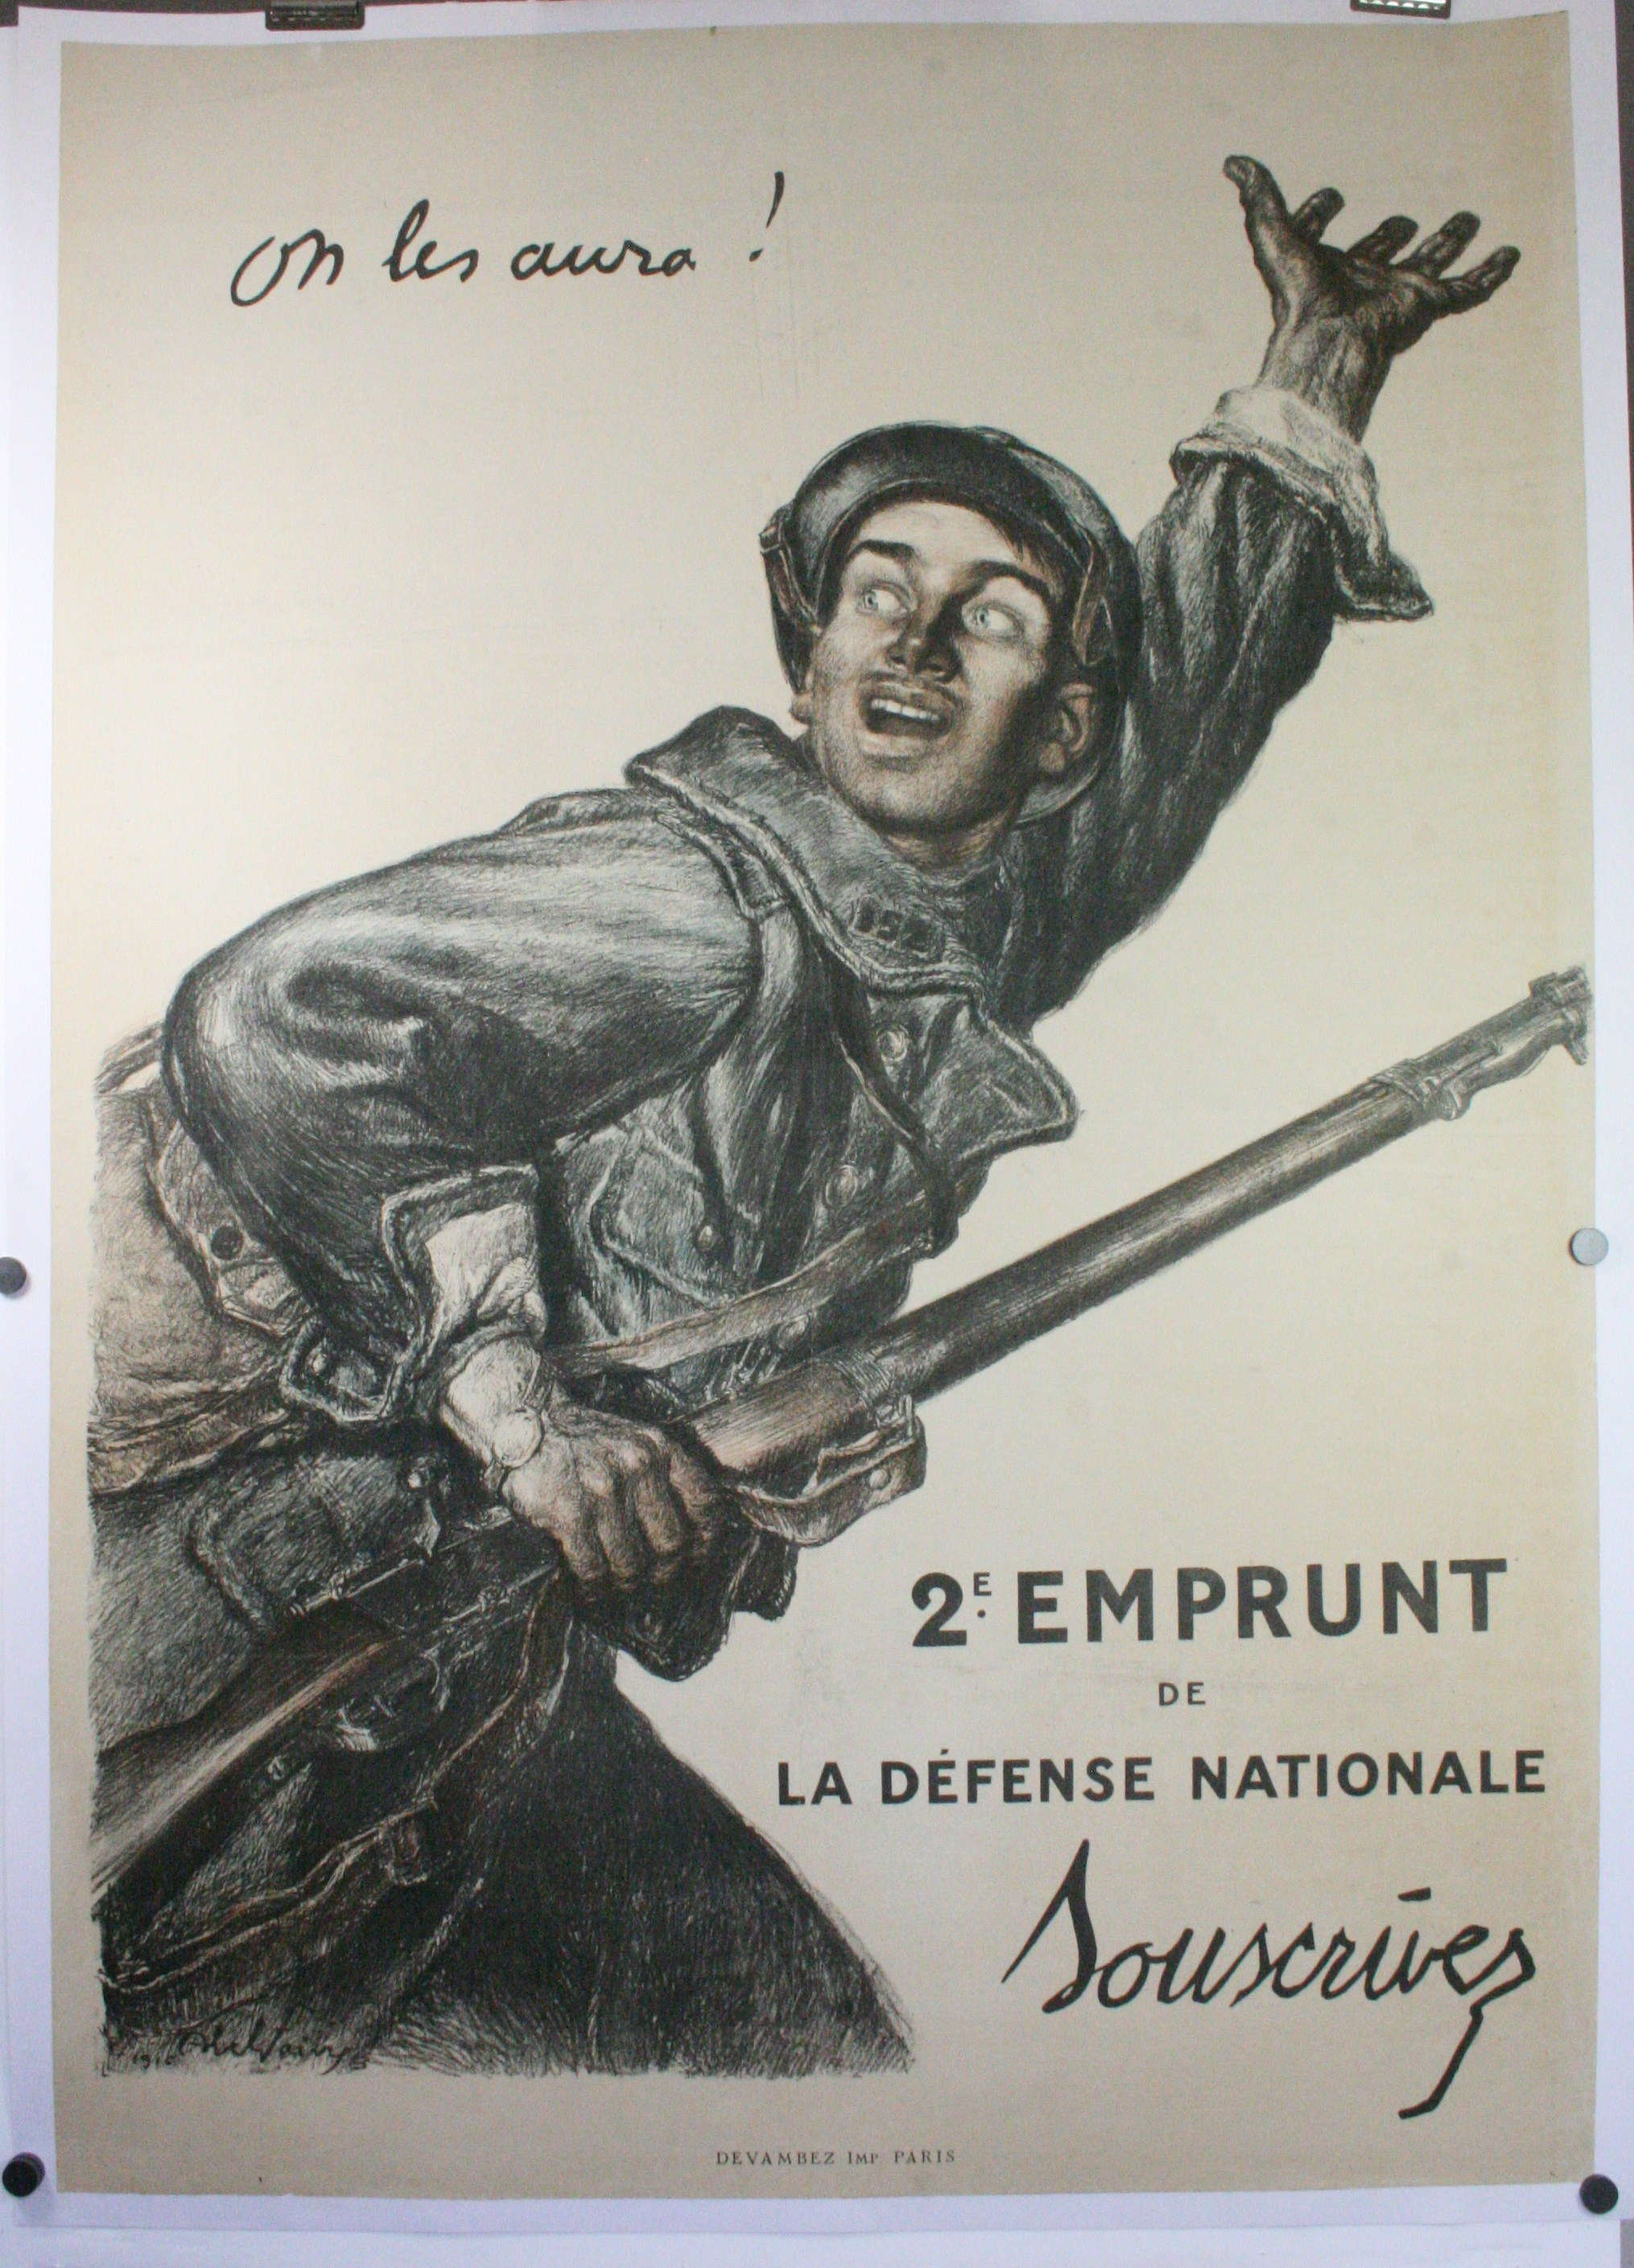 essay on ww1 propaganda Propaganda posters of wwi essays the united states produced a lot of propaganda posters during wwi most explained that we should eat certain foods so we can send the.